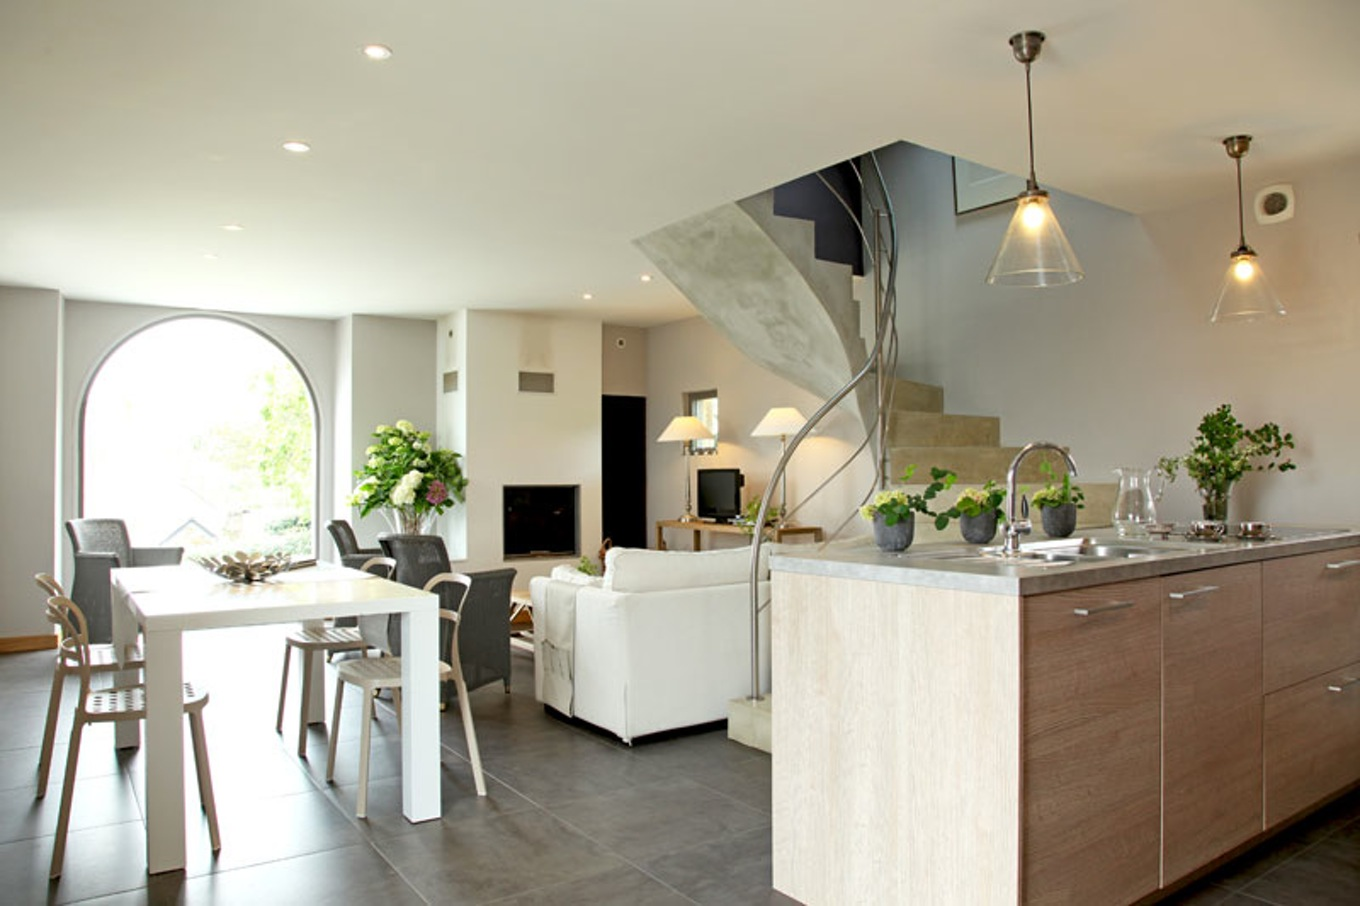 Decoration interieur de maison contemporaine - Interieur maison contemporaine photos ...